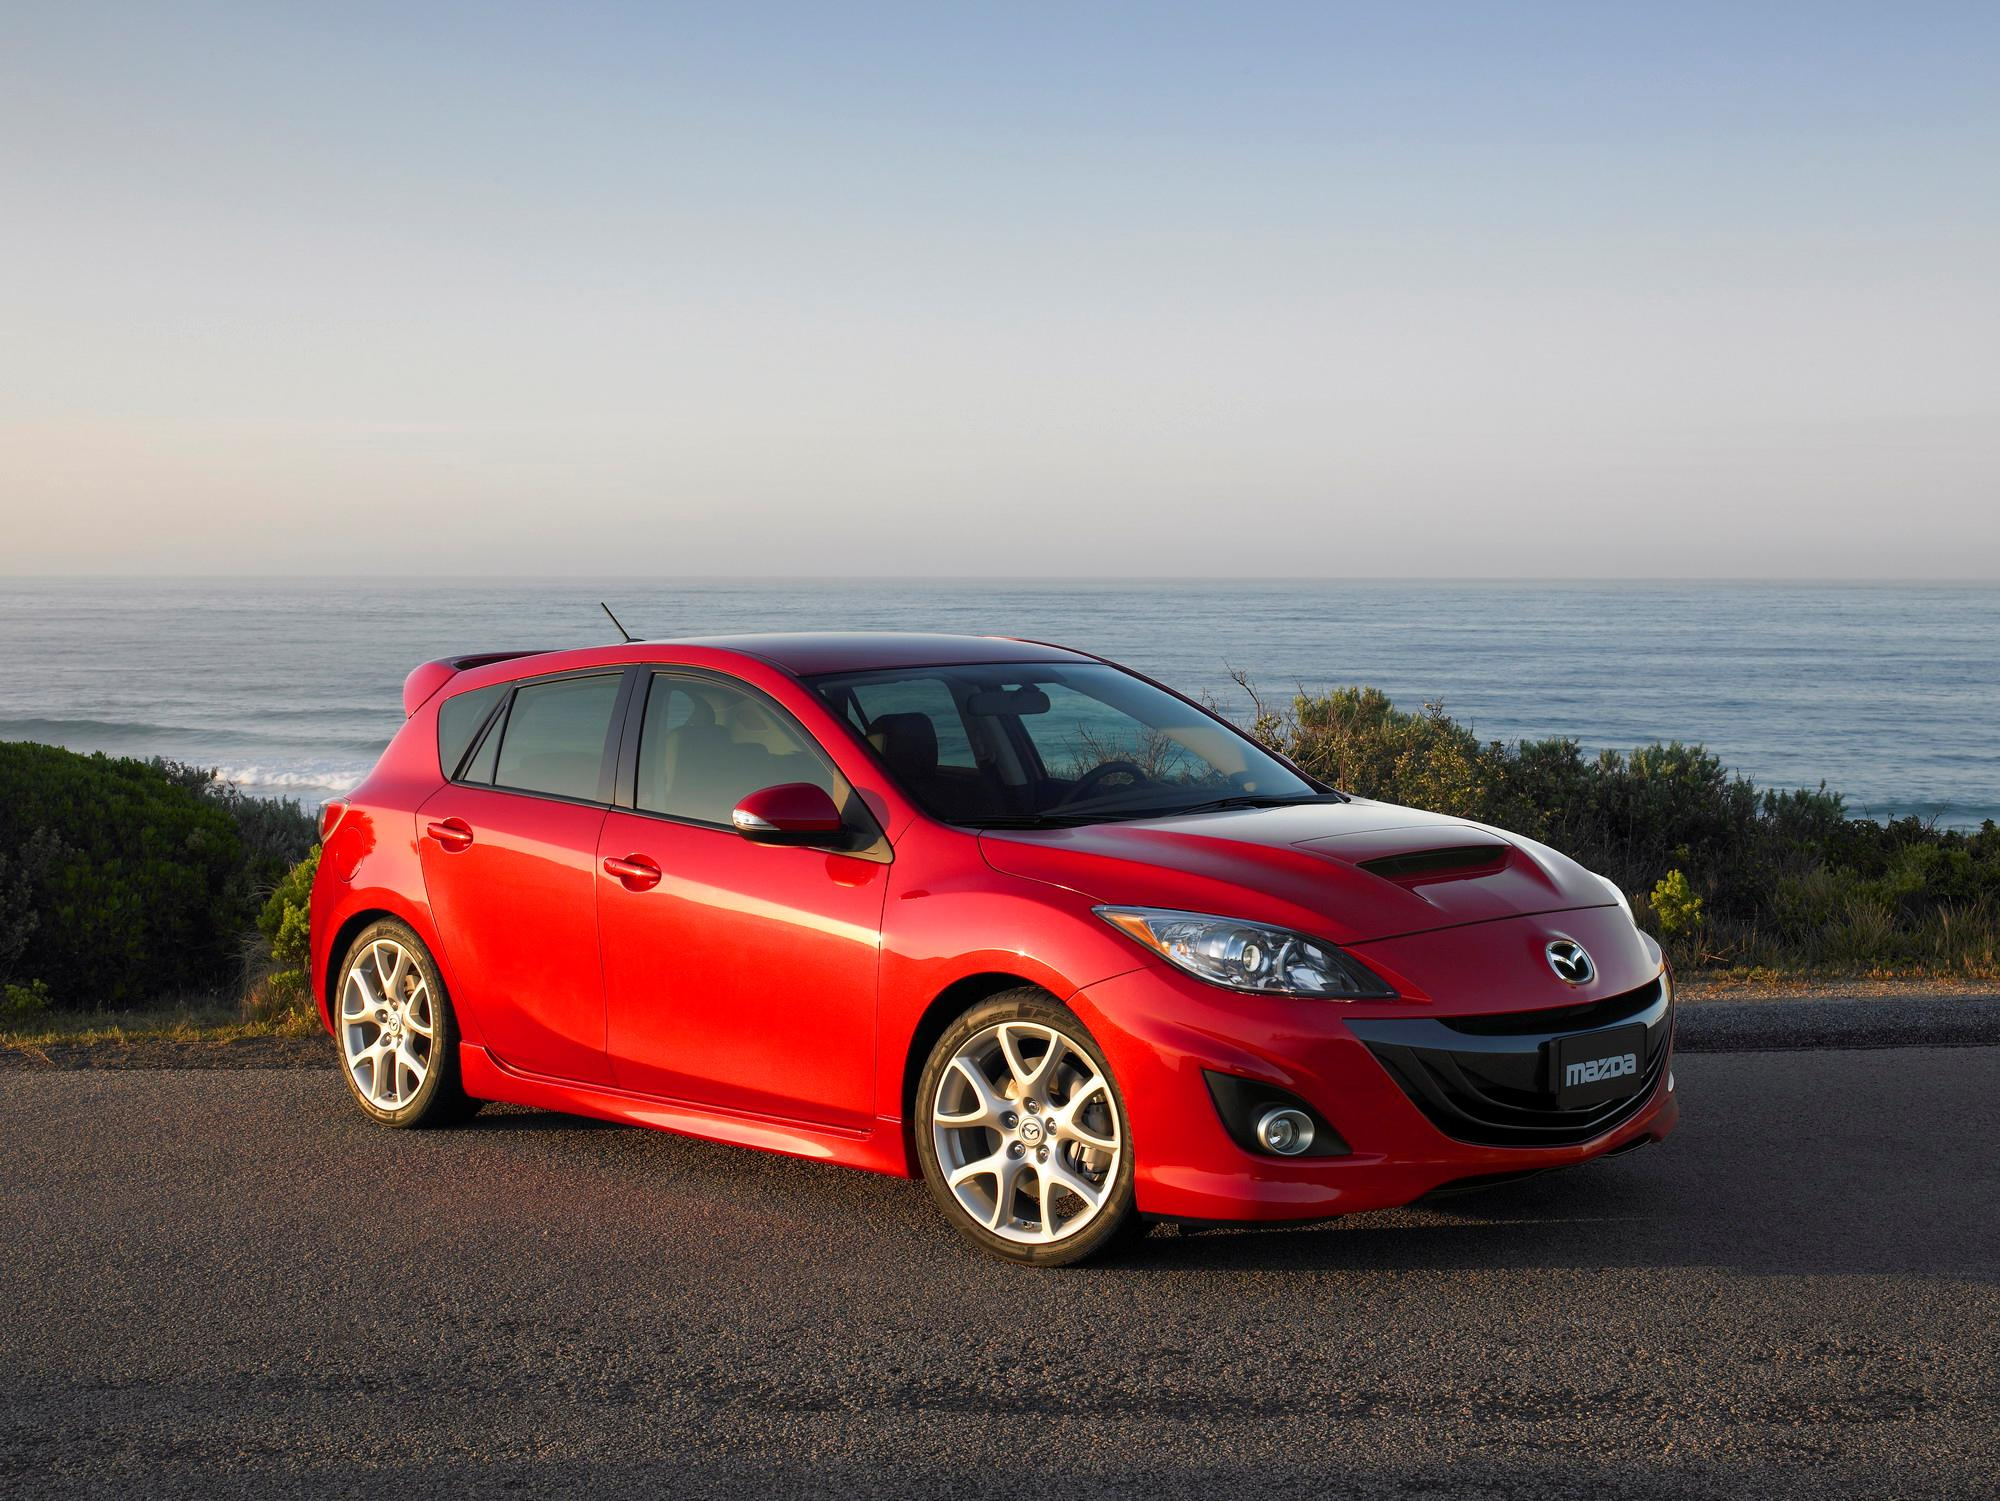 2010 Mazdaspeed3 | Top Speed. »